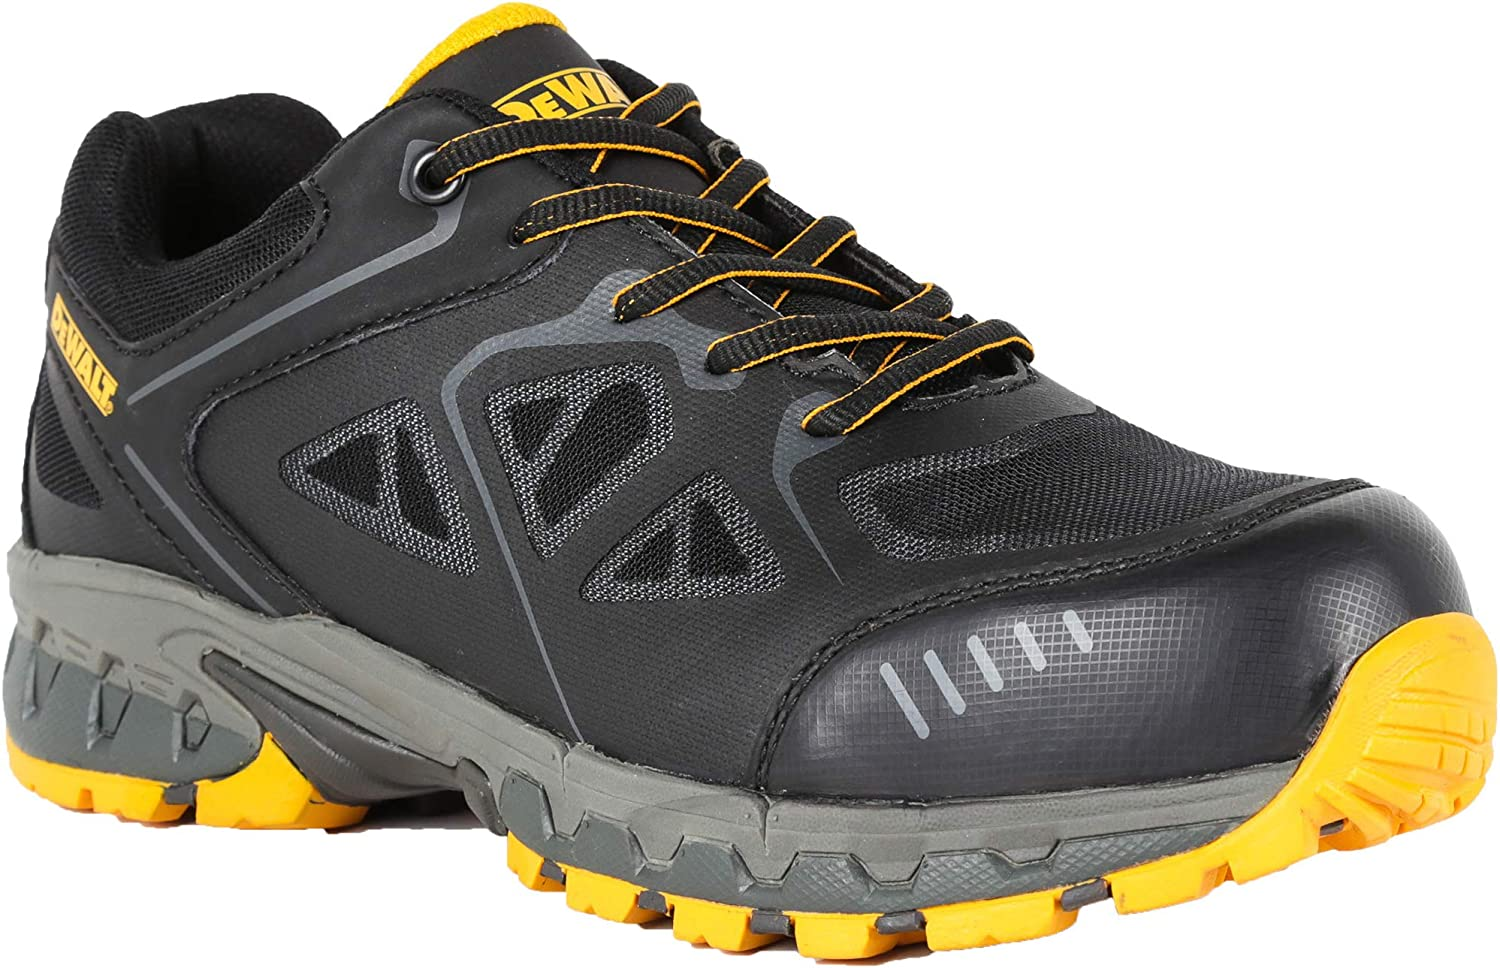 The Best Dewalt Angle Shoes